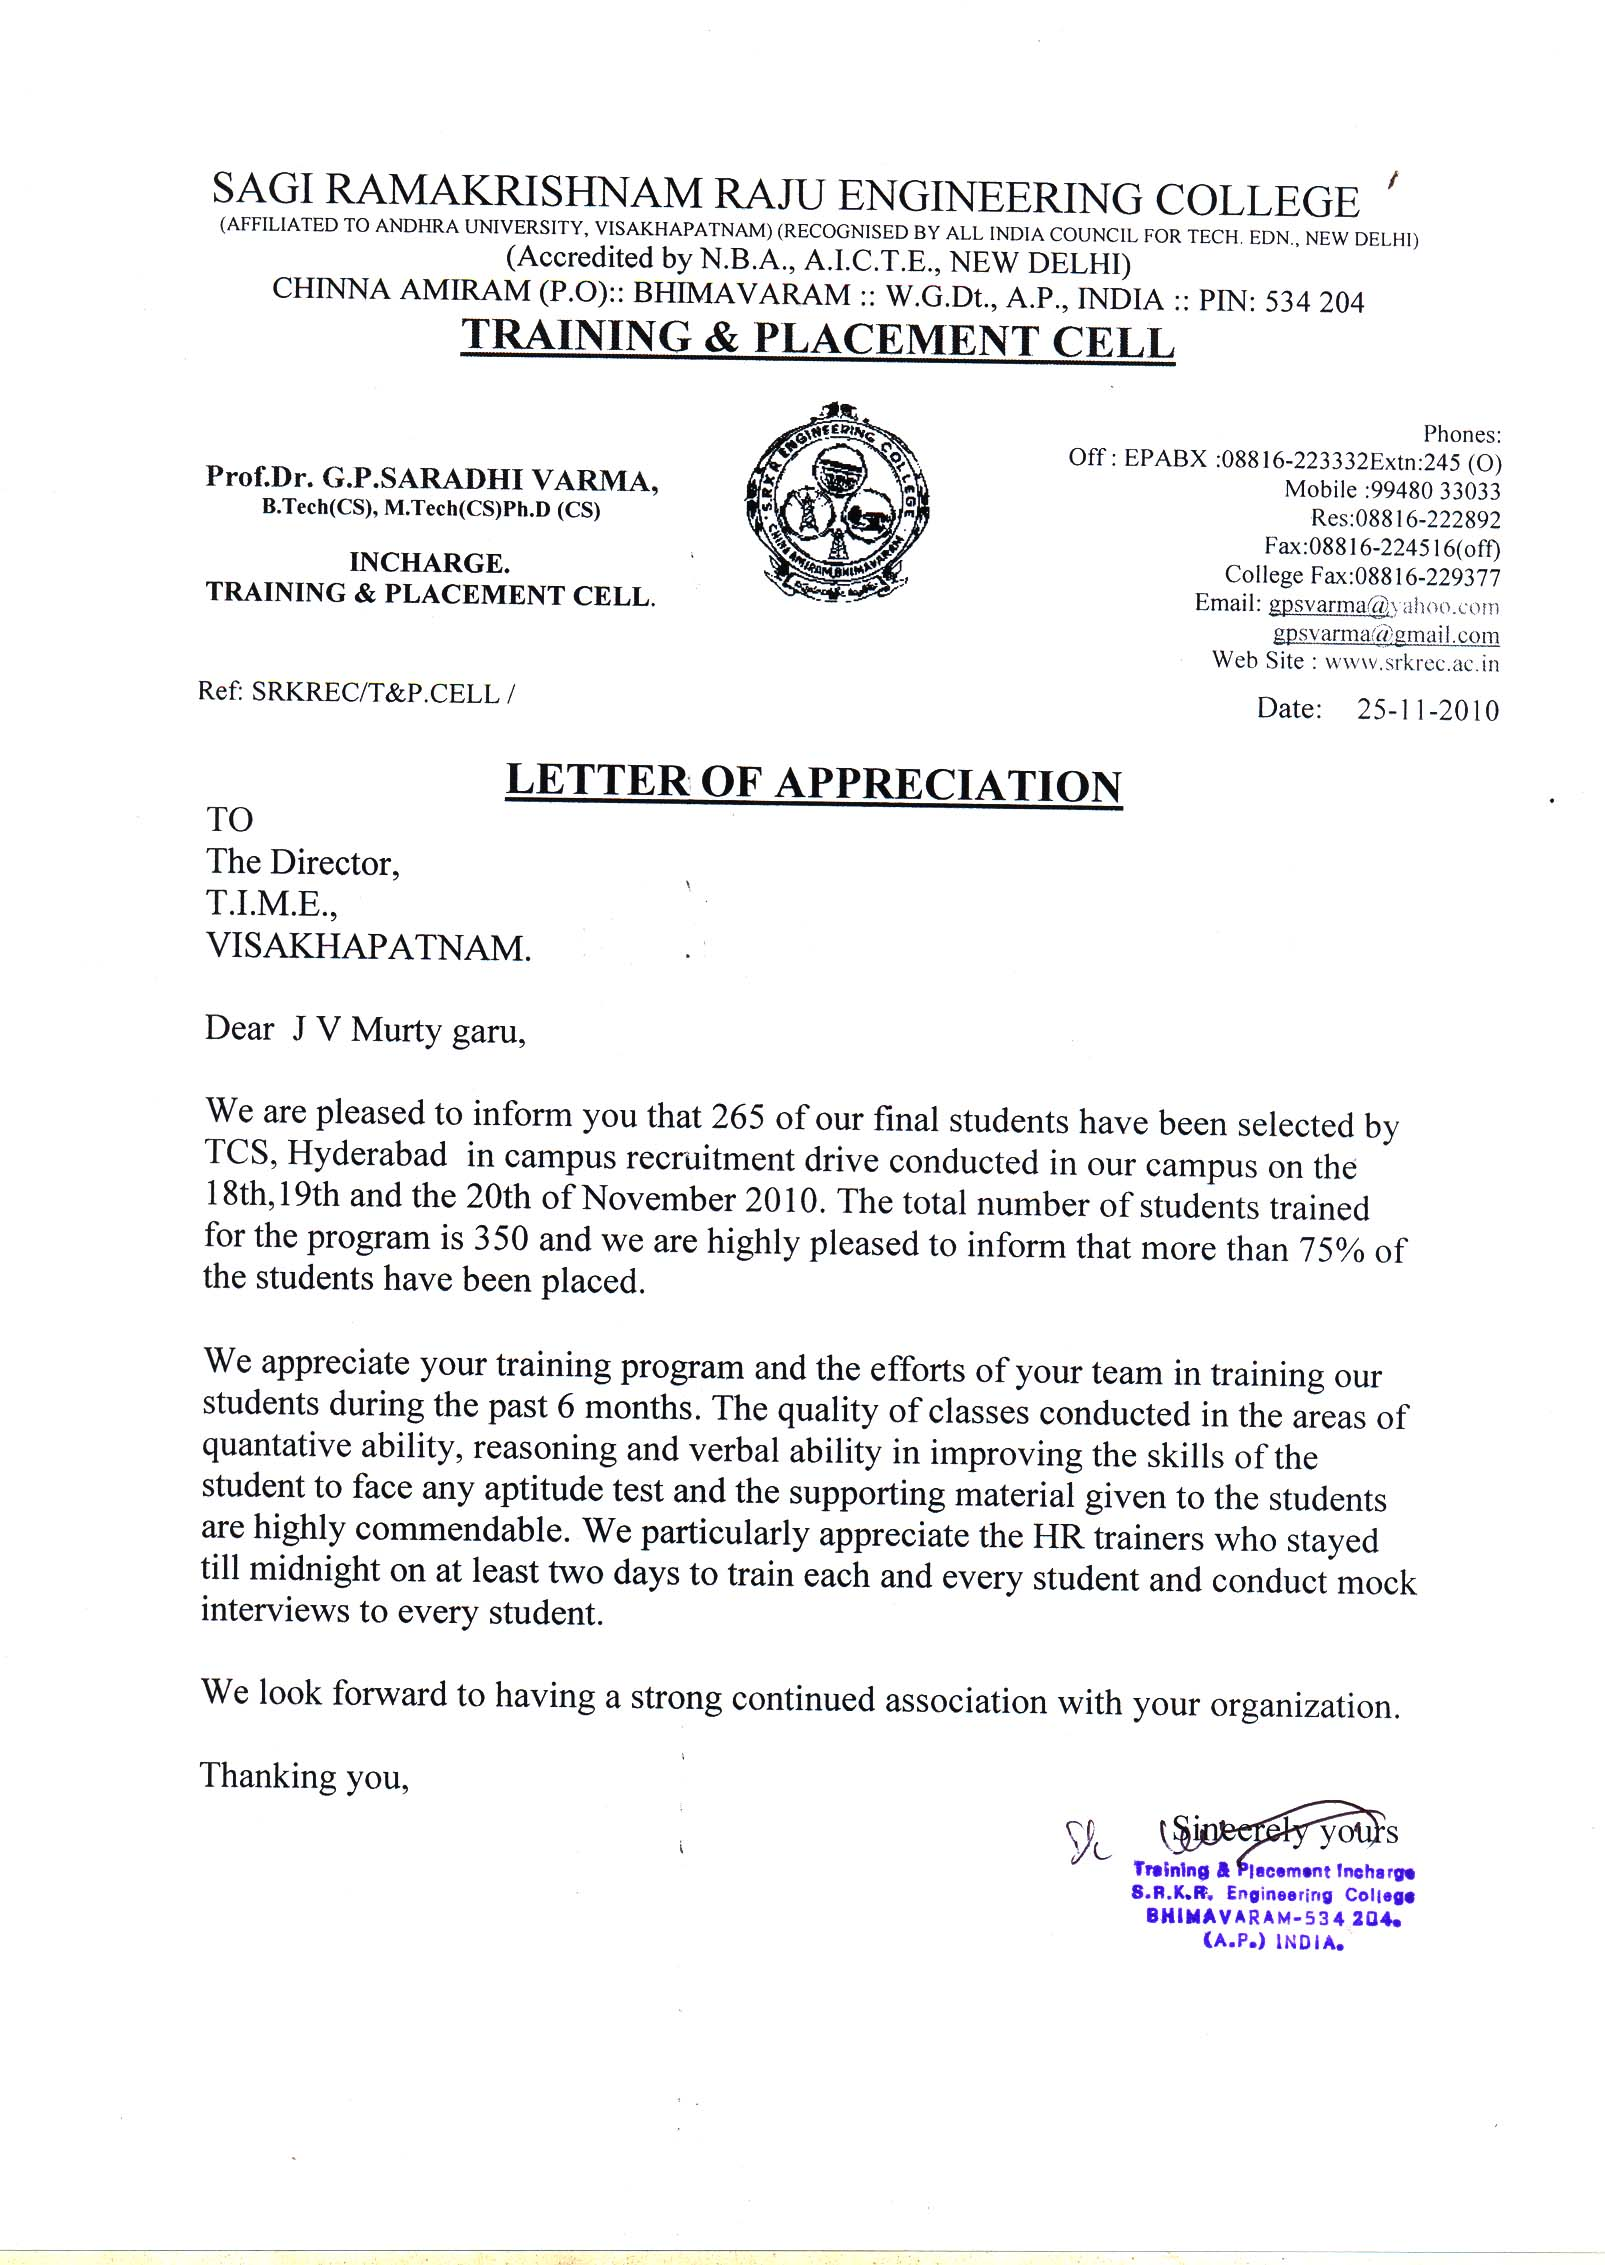 Resignation Letter Appreciation Letter After Resignation Letter Of